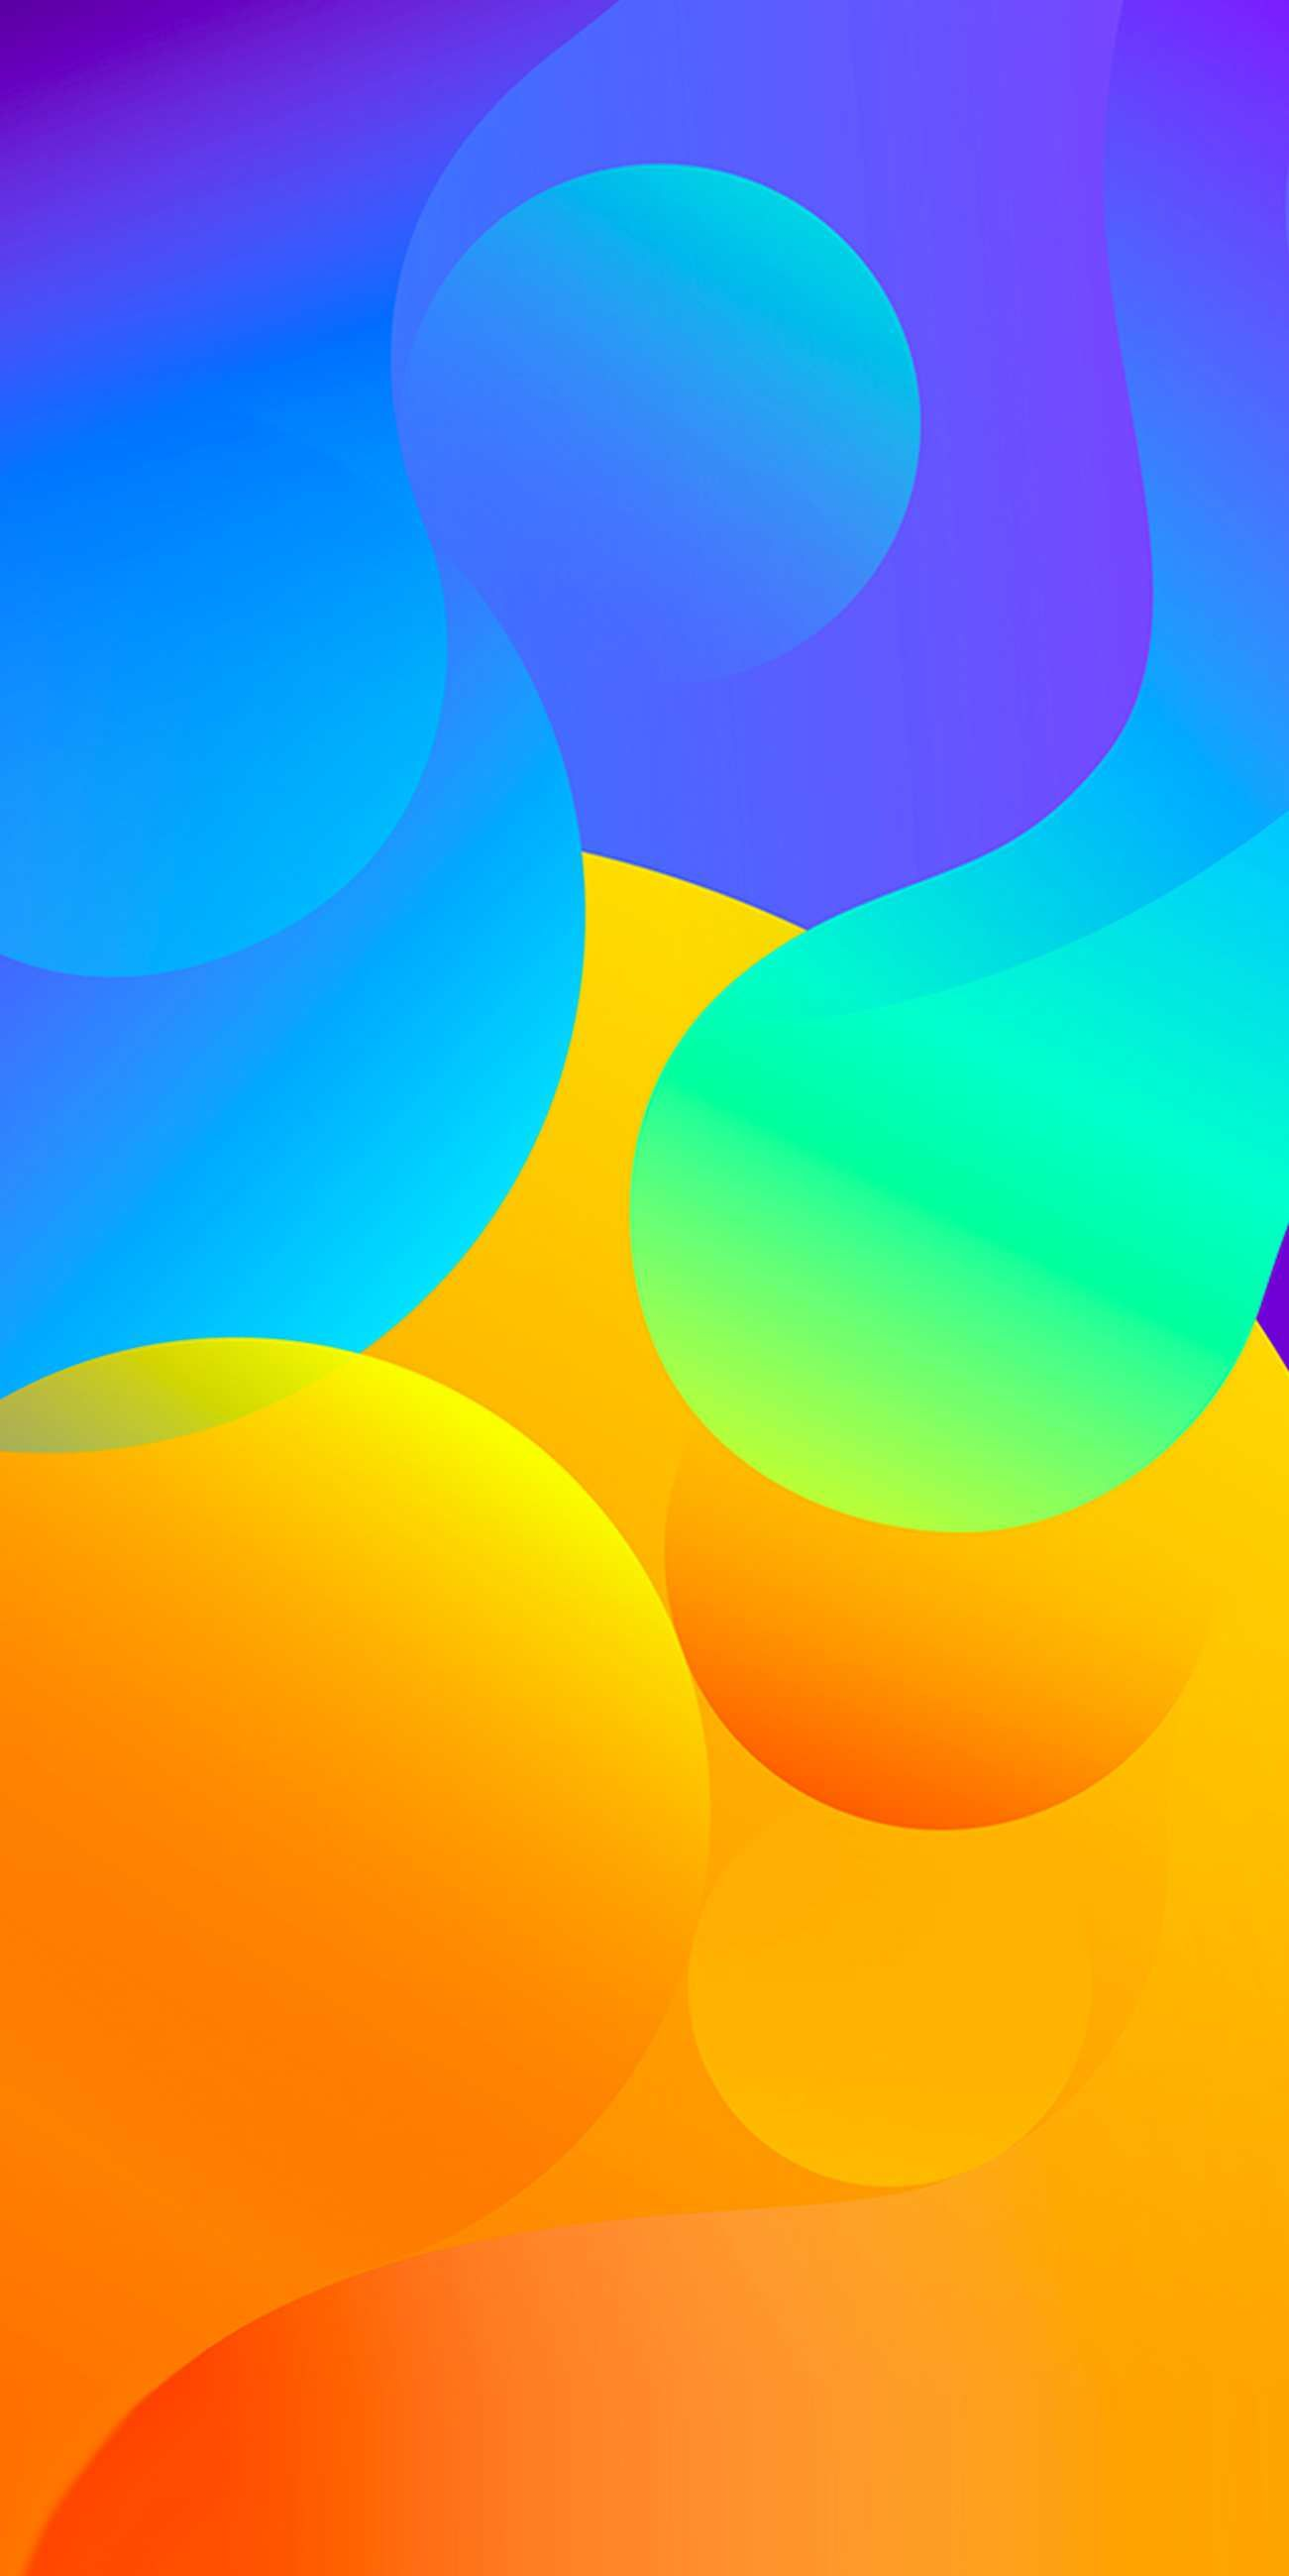 Colour Circles Abstract Iphone Wallpaper Abstract Iphone Wallpaper Color Wallpaper Iphone Beautiful Nature Wallpaper